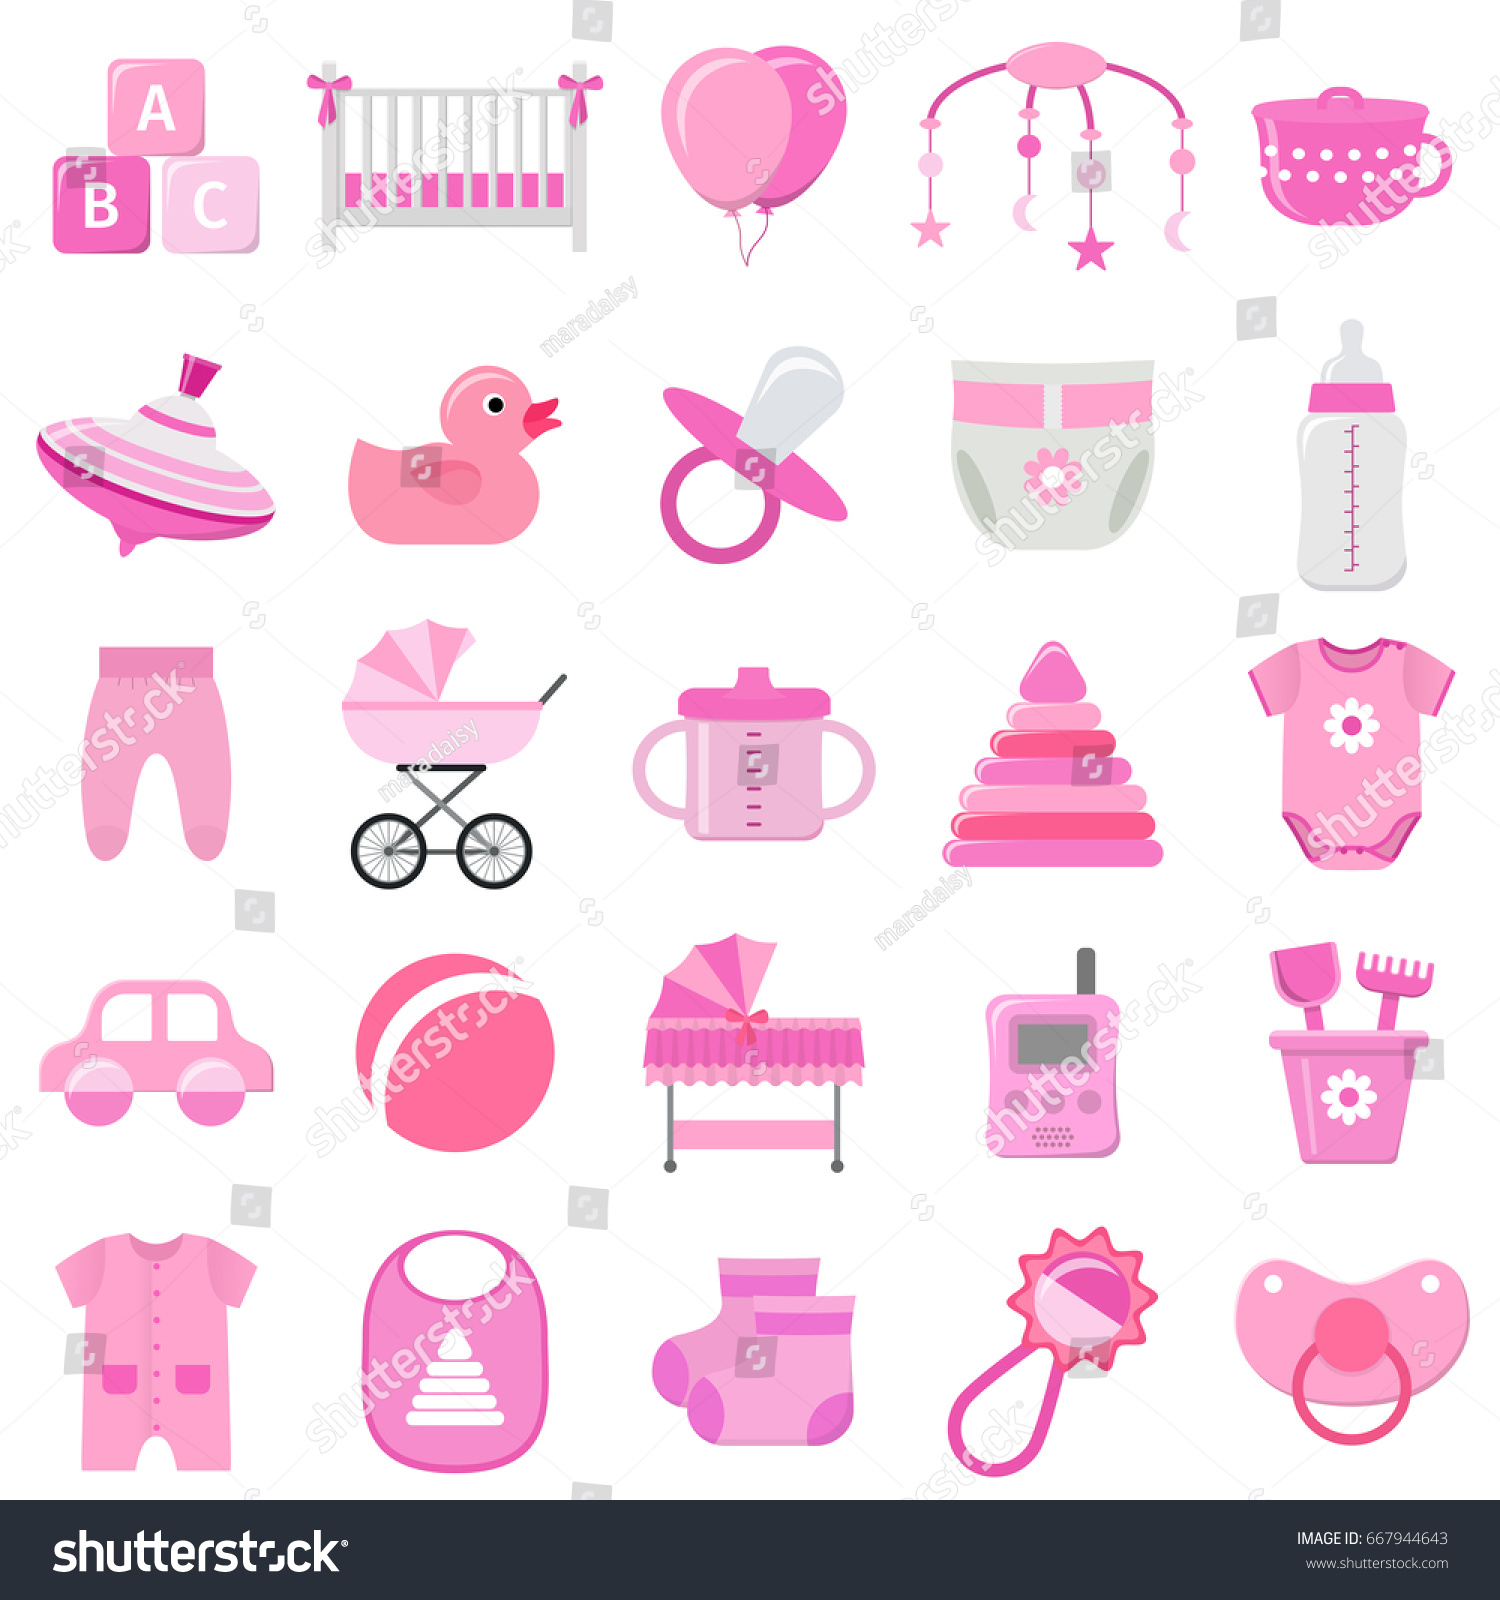 Baby girl icons set vector baby stock vector 667944643 shutterstock baby girl icons set vector baby shower pink symbols isolated on white background buycottarizona Gallery